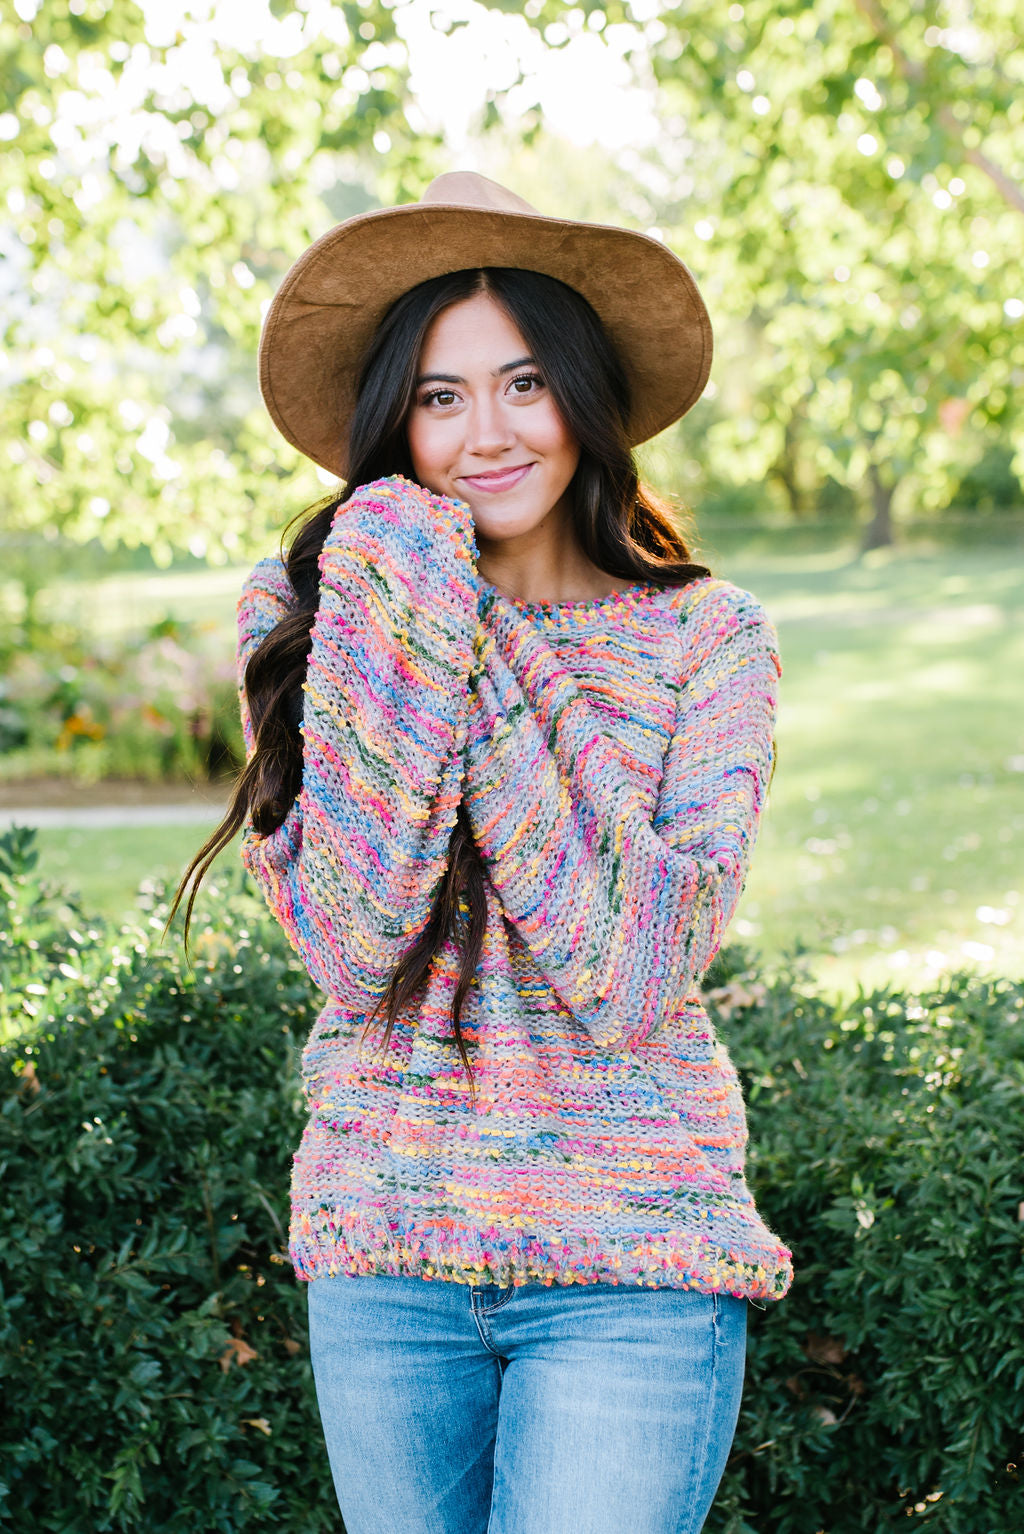 SAMMY BOLD MULTI-COLORED SWEATER